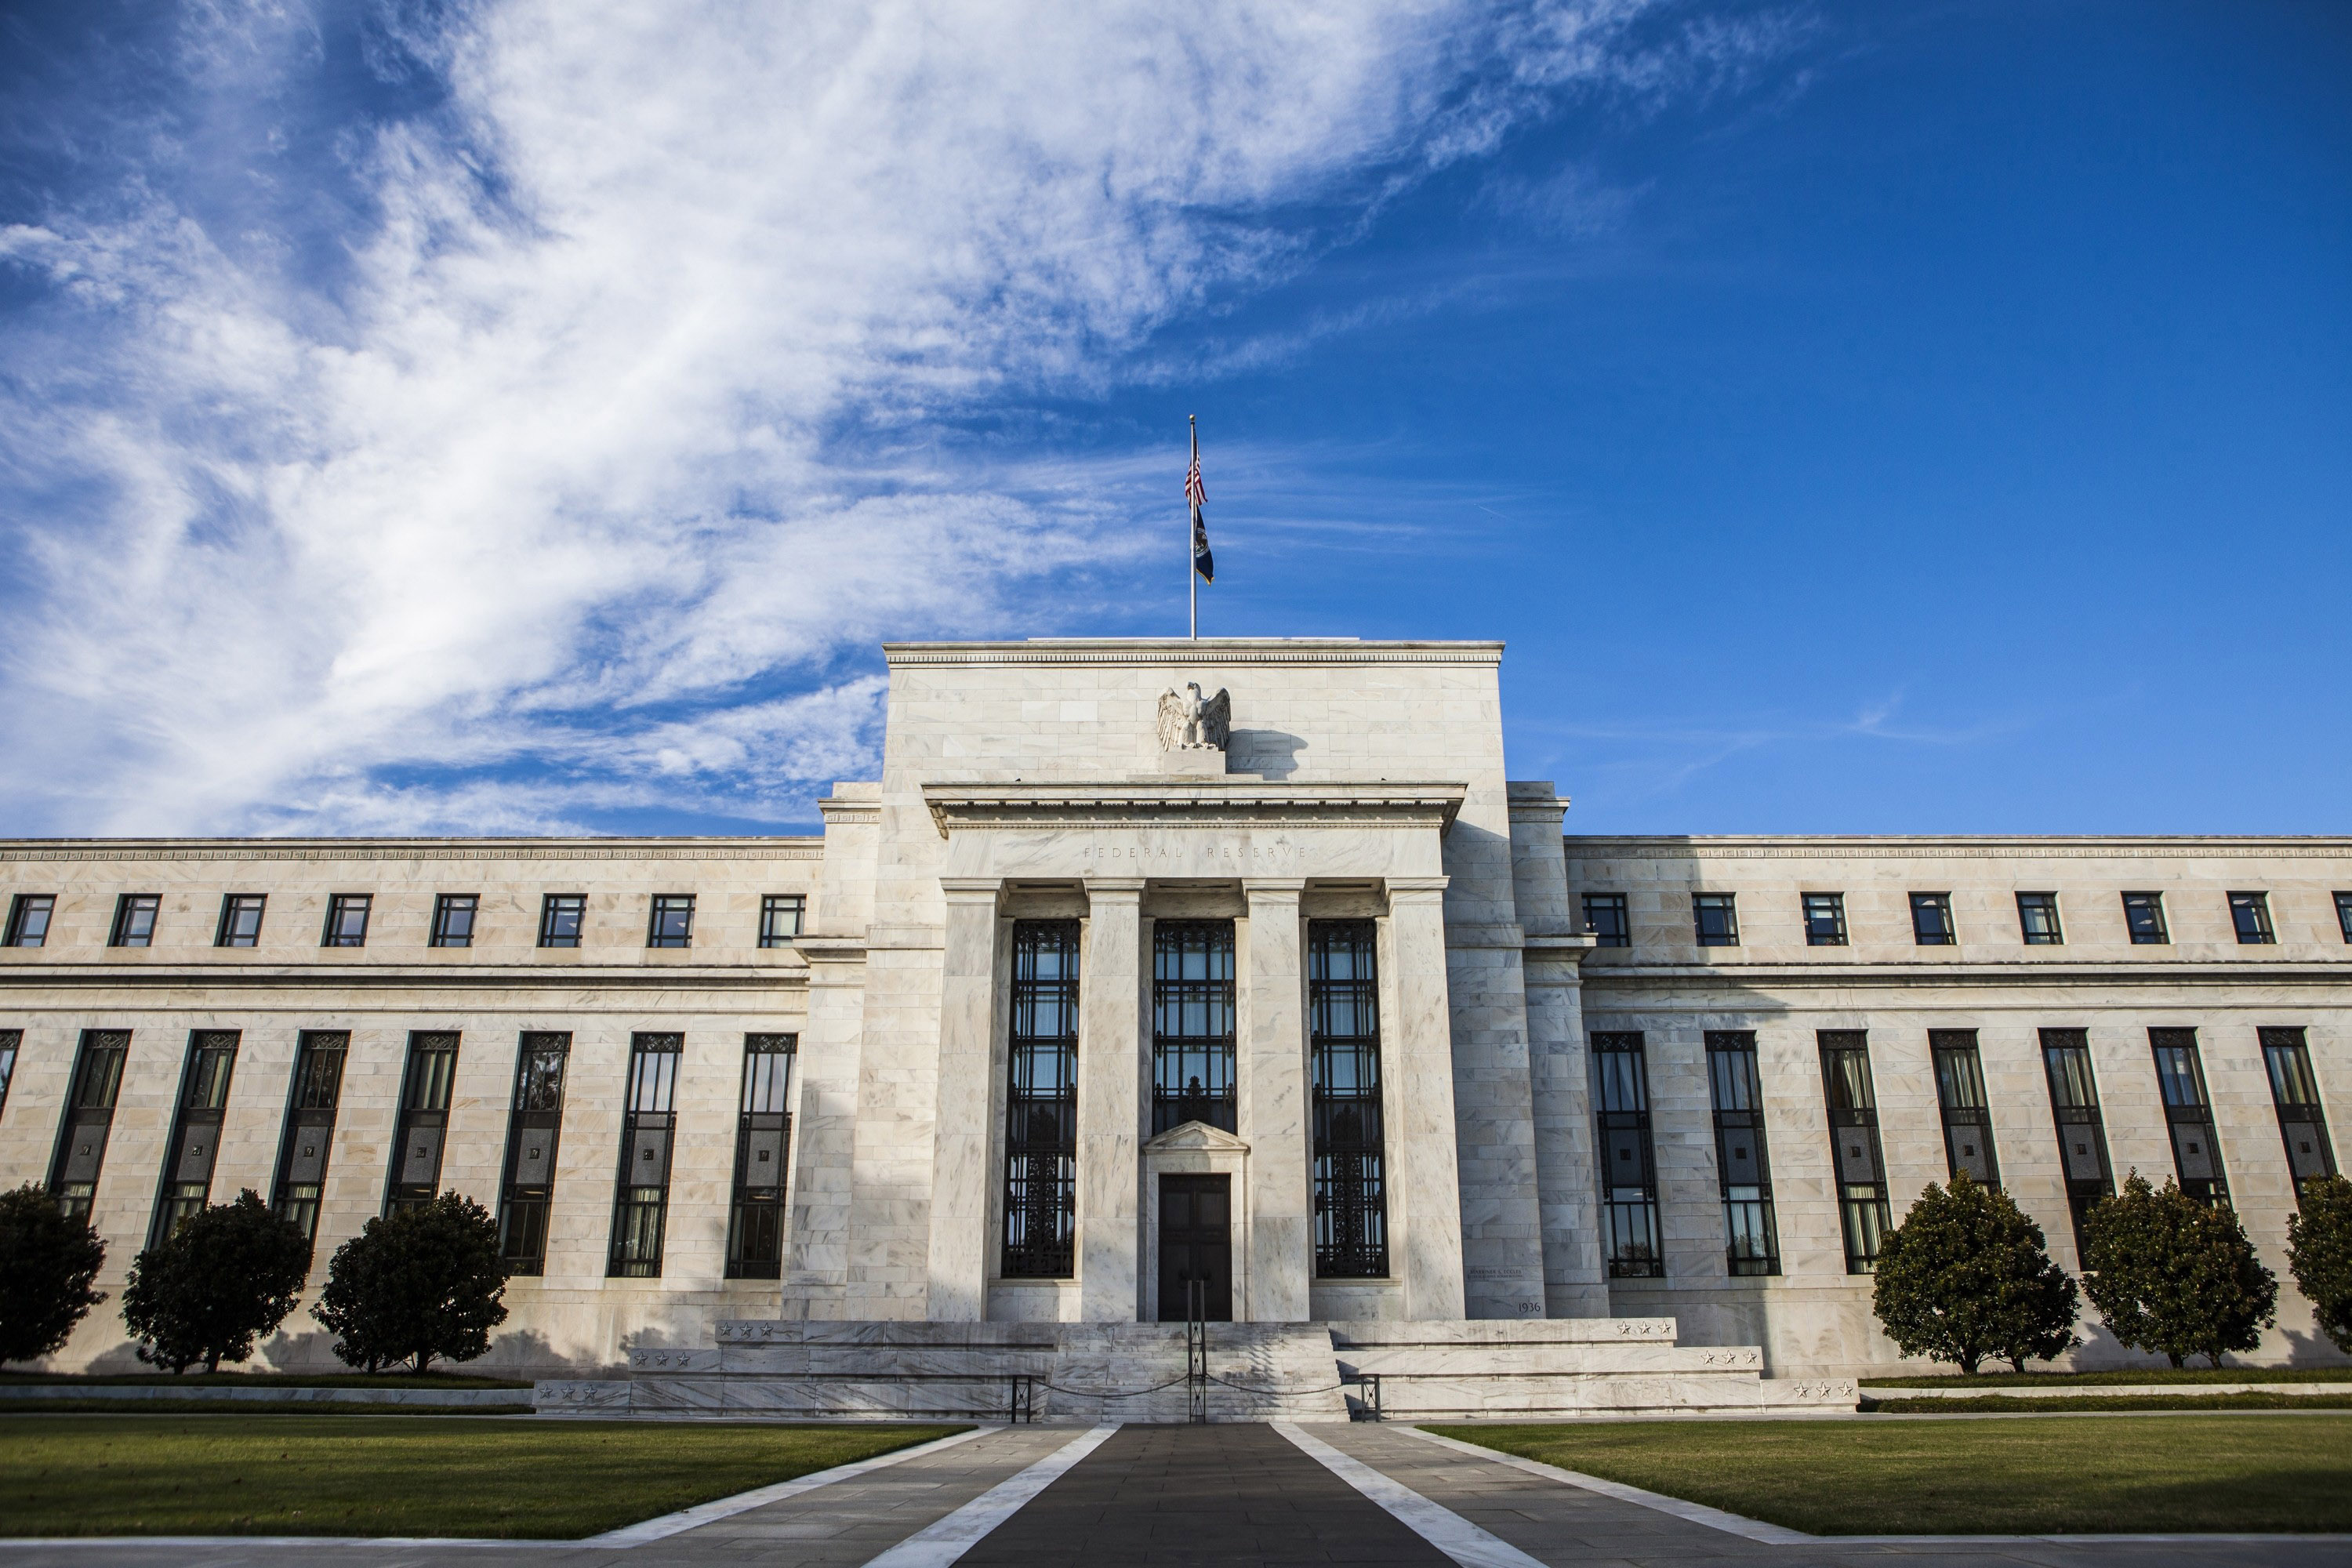 The Federal Reserve Building in Washington, D.C., on Oct. 27, 2014.